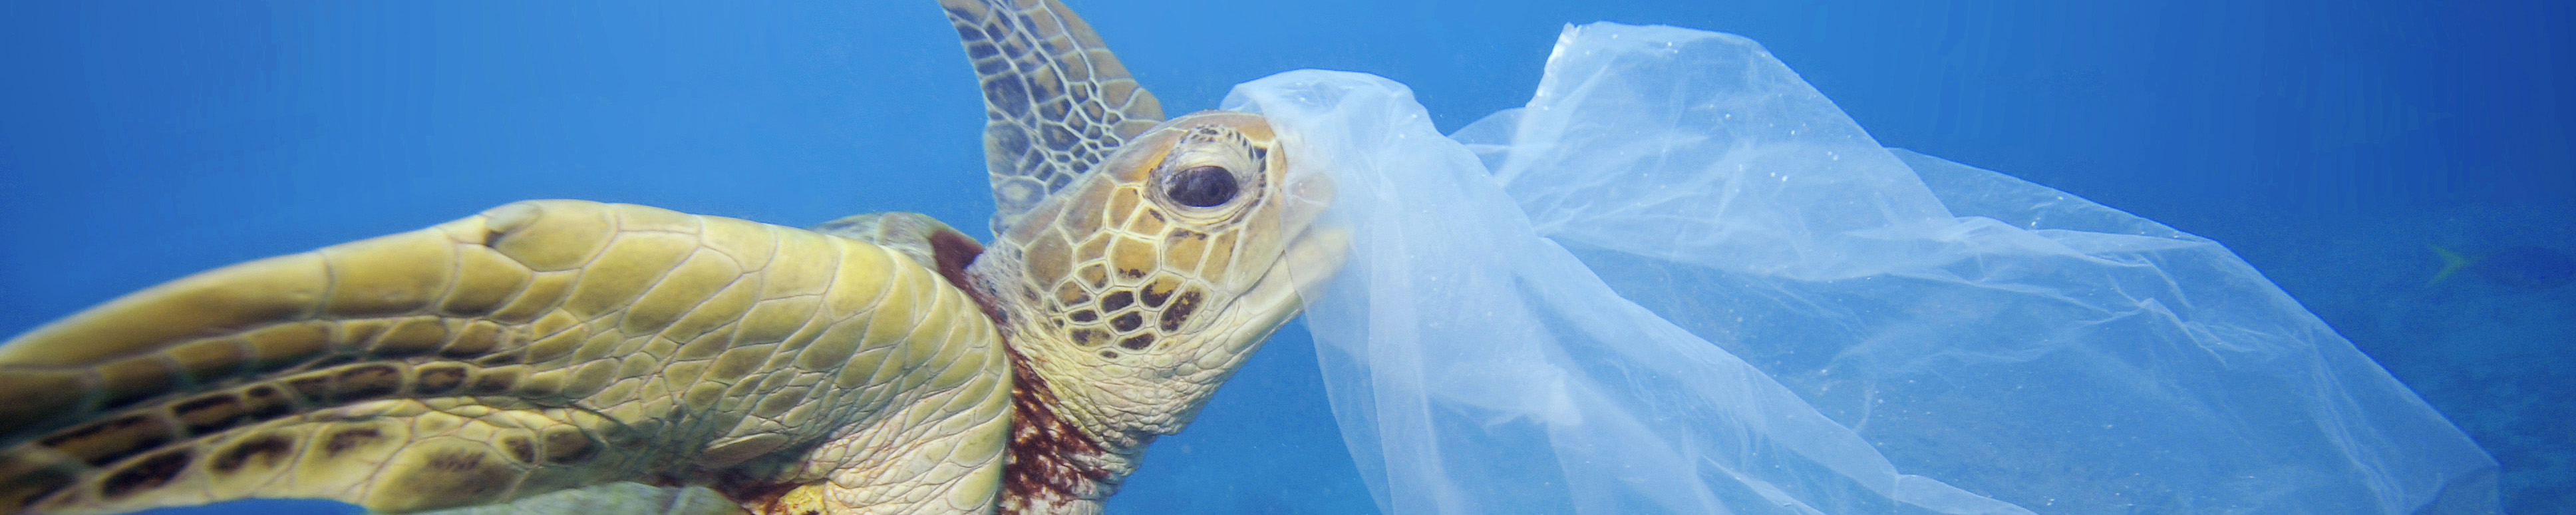 Green sea turtle with a plastic bag